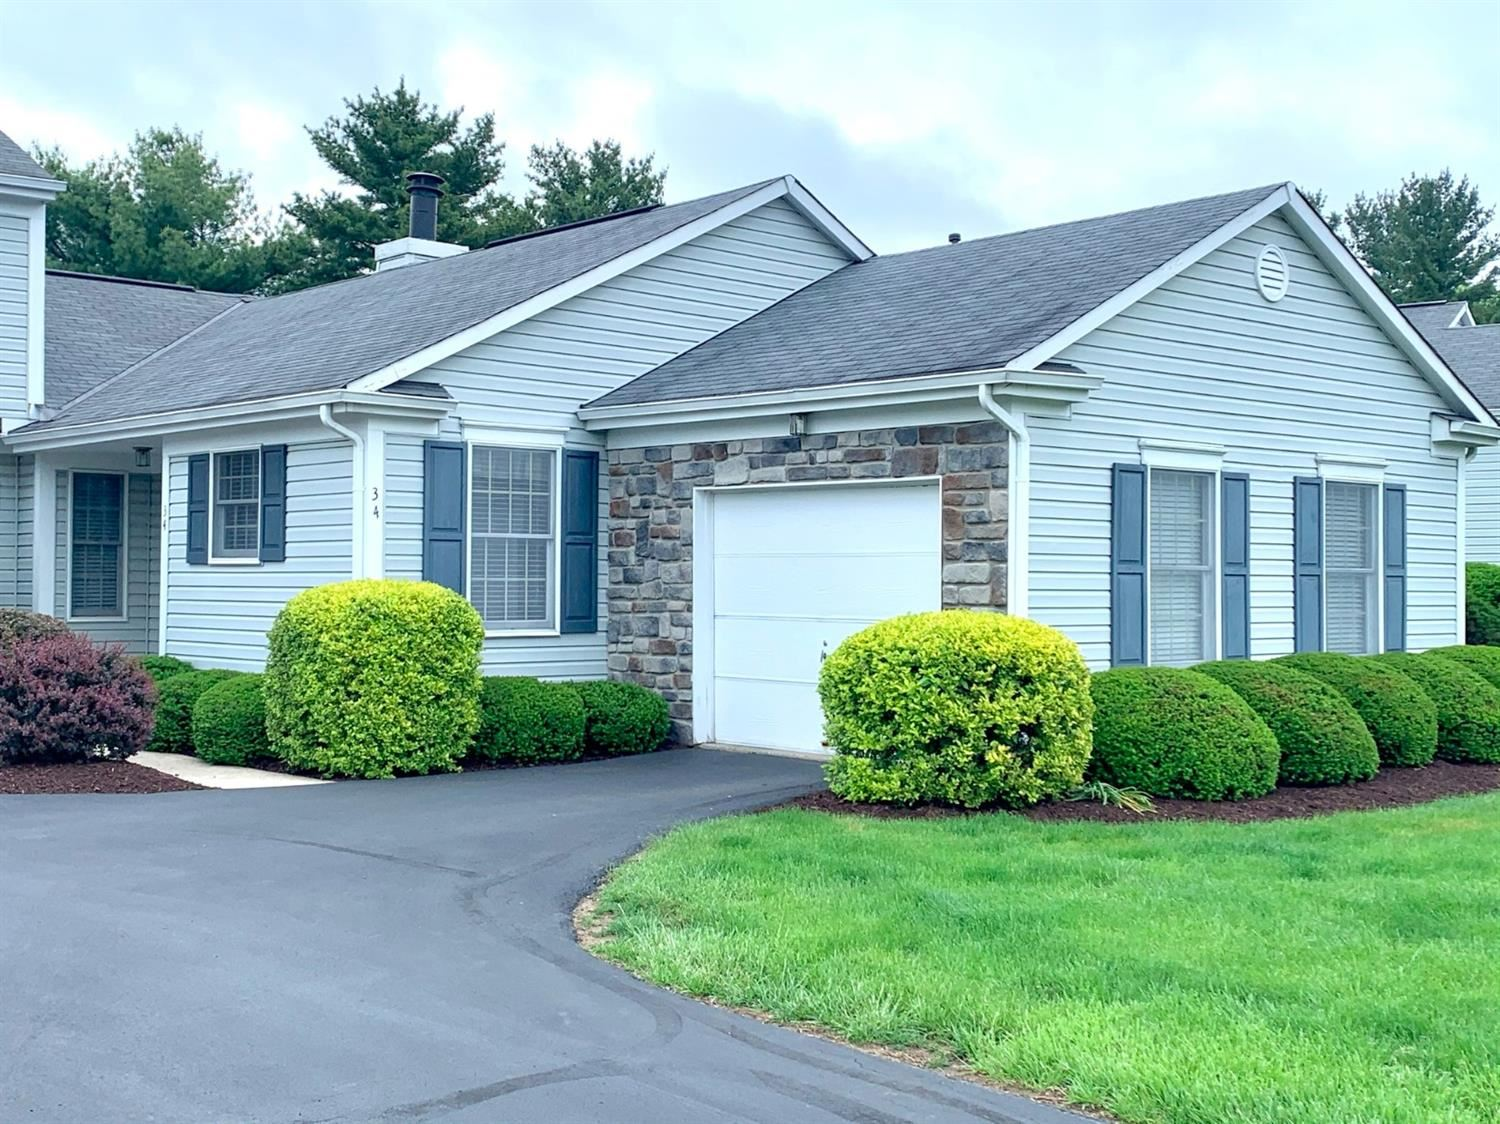 34 Wellesley Place, Fairfield, OH 45014 - #: 1700655